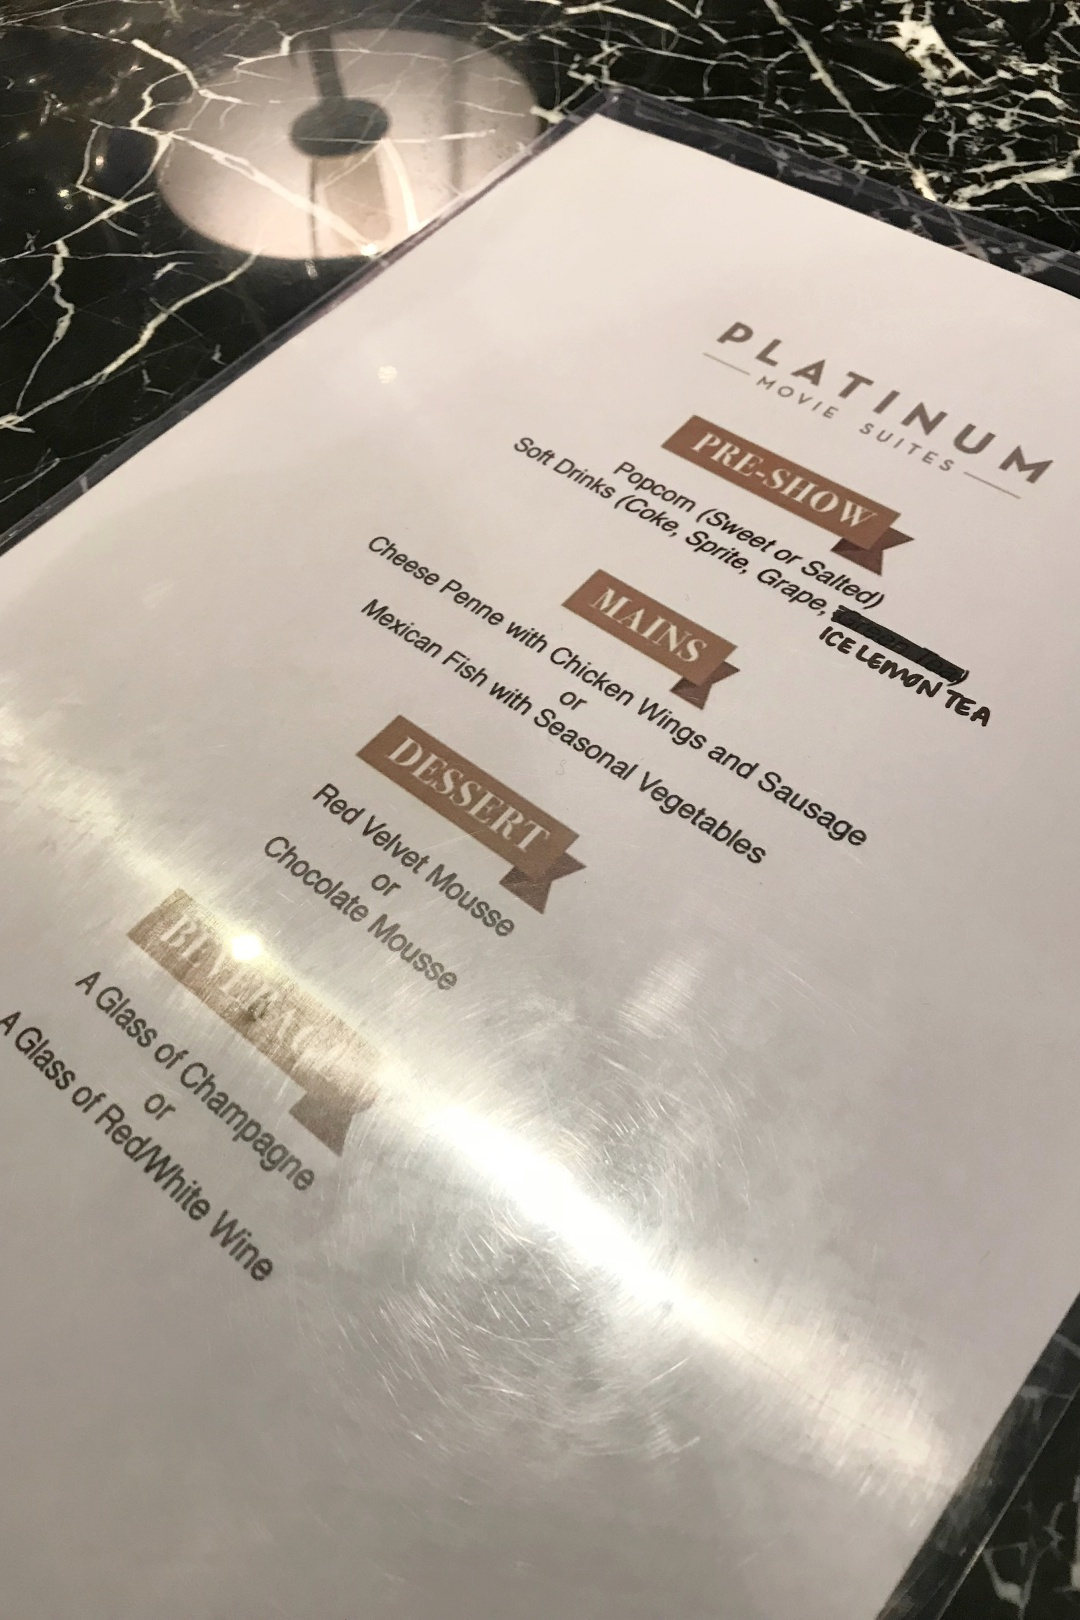 The Cathay - Platinum Movie Suites - F&B Menu | joanne-khoo.com